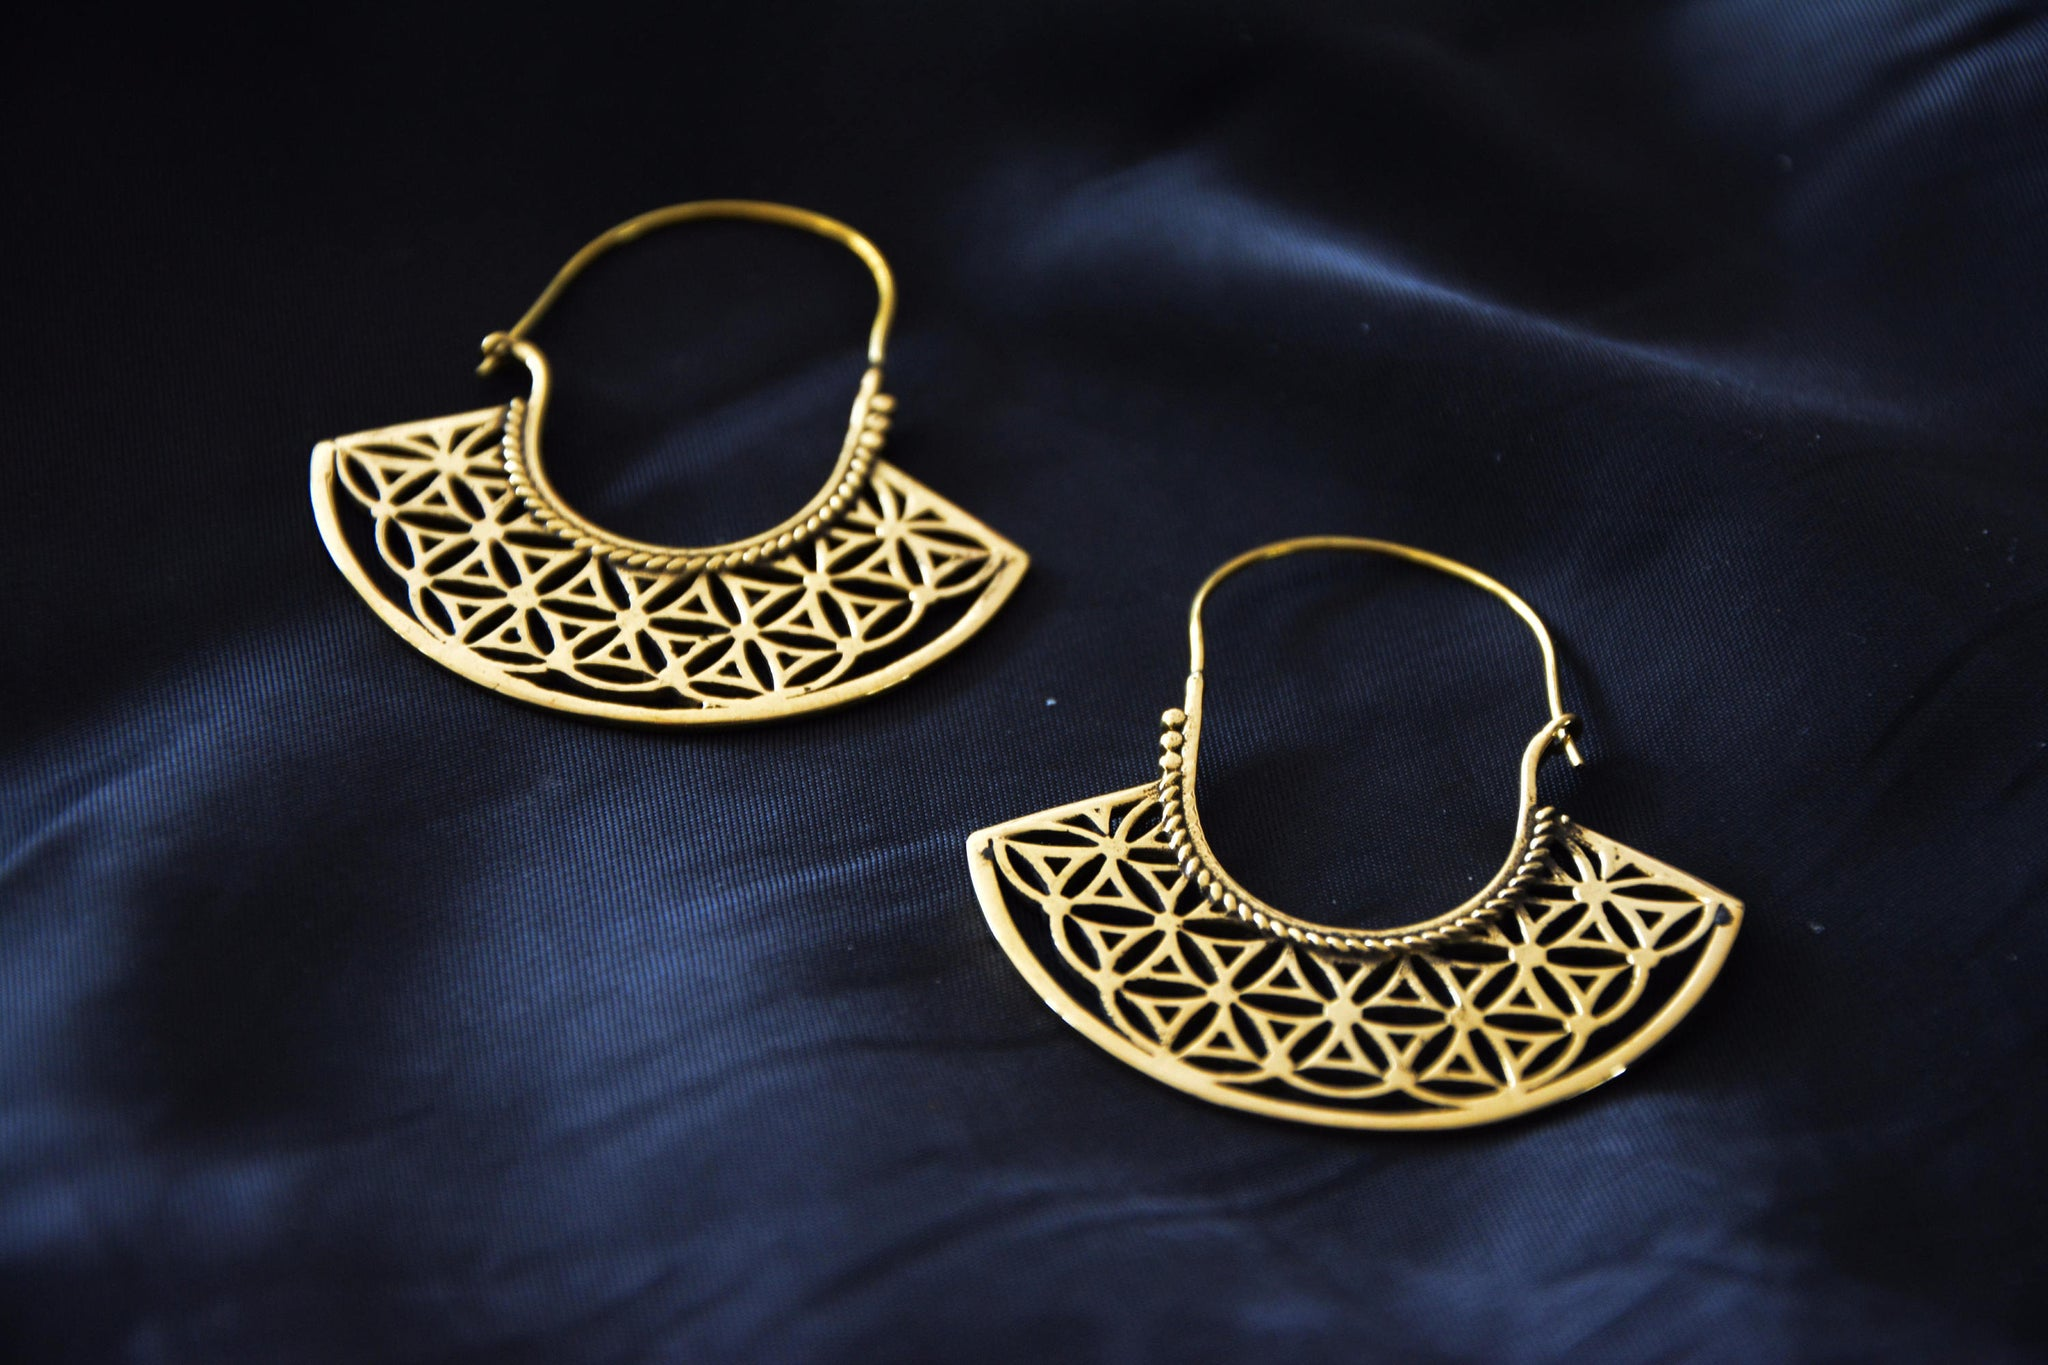 FLOWER OF LIFE Earrings - Tribal Earrings, Tribal Hoops, Psytrance, Geometric Earrings, Sacred Geometry